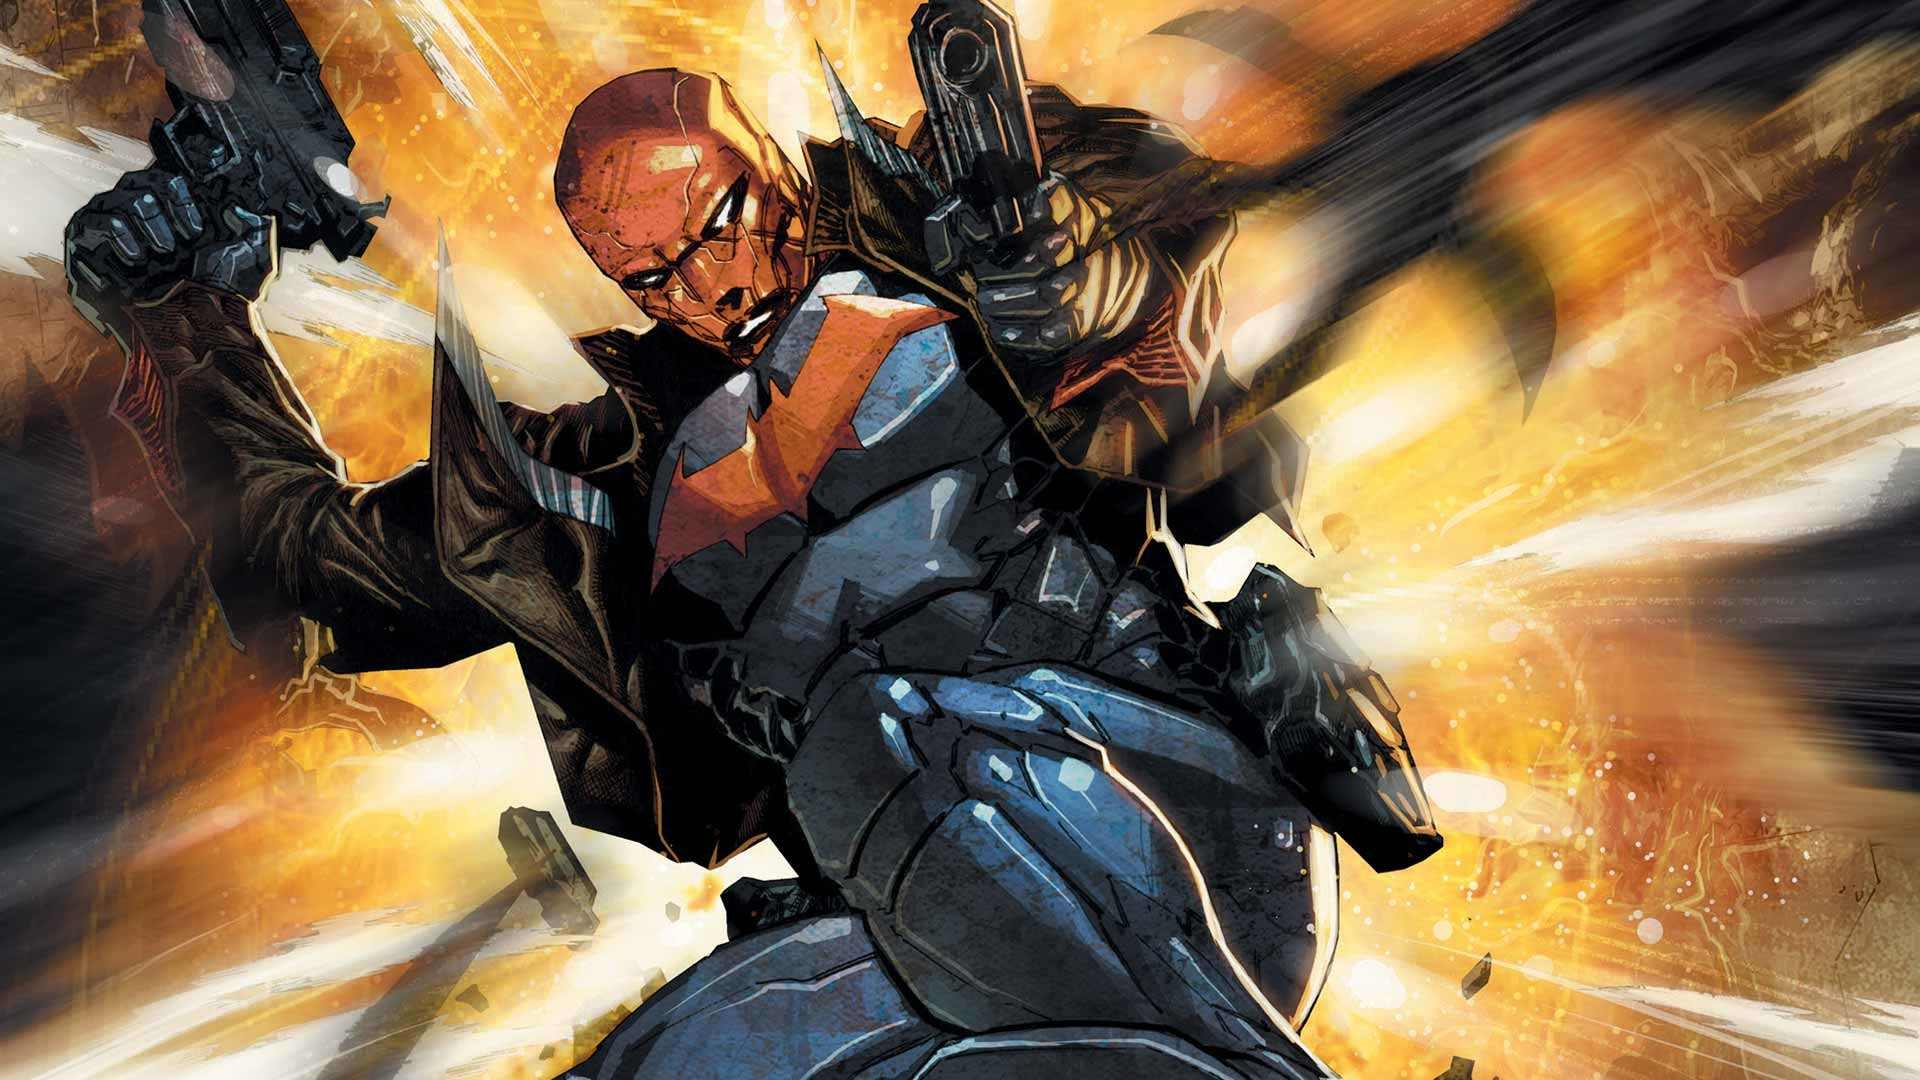 Comics – Red Hood and the Outlaws Wallpaper